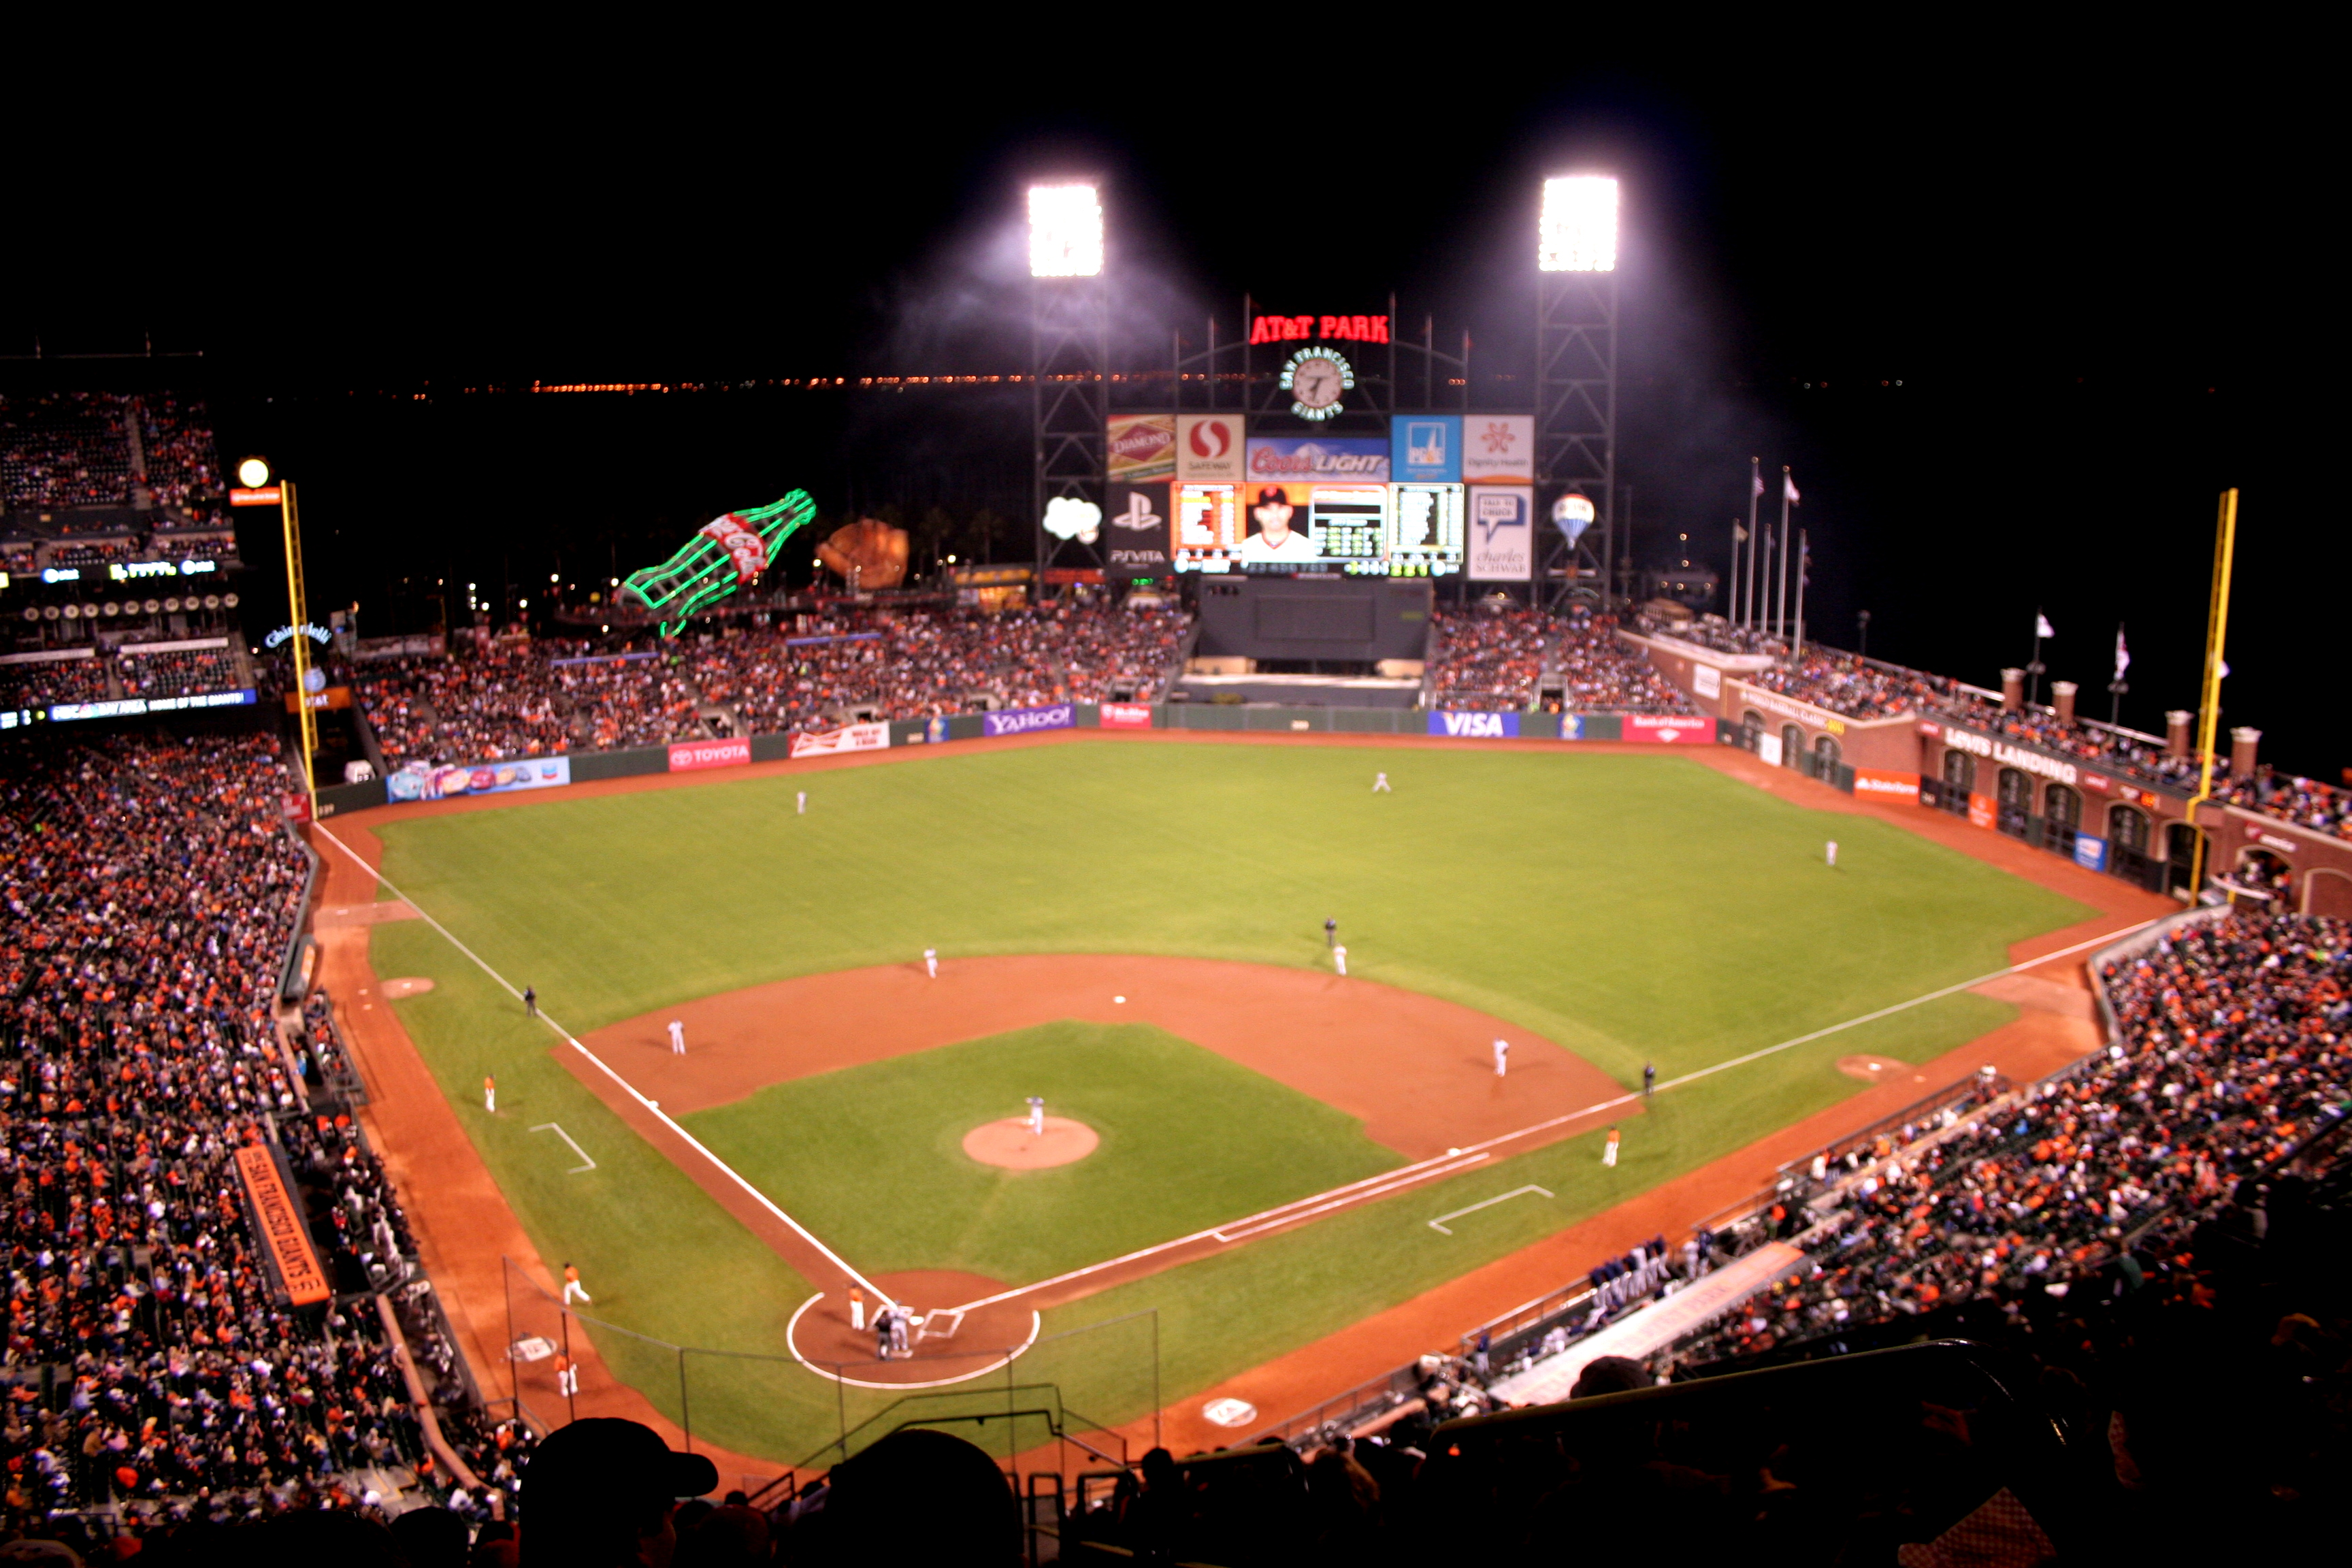 The San Francisco Giants play the San Diego Padres at AT&T Park.